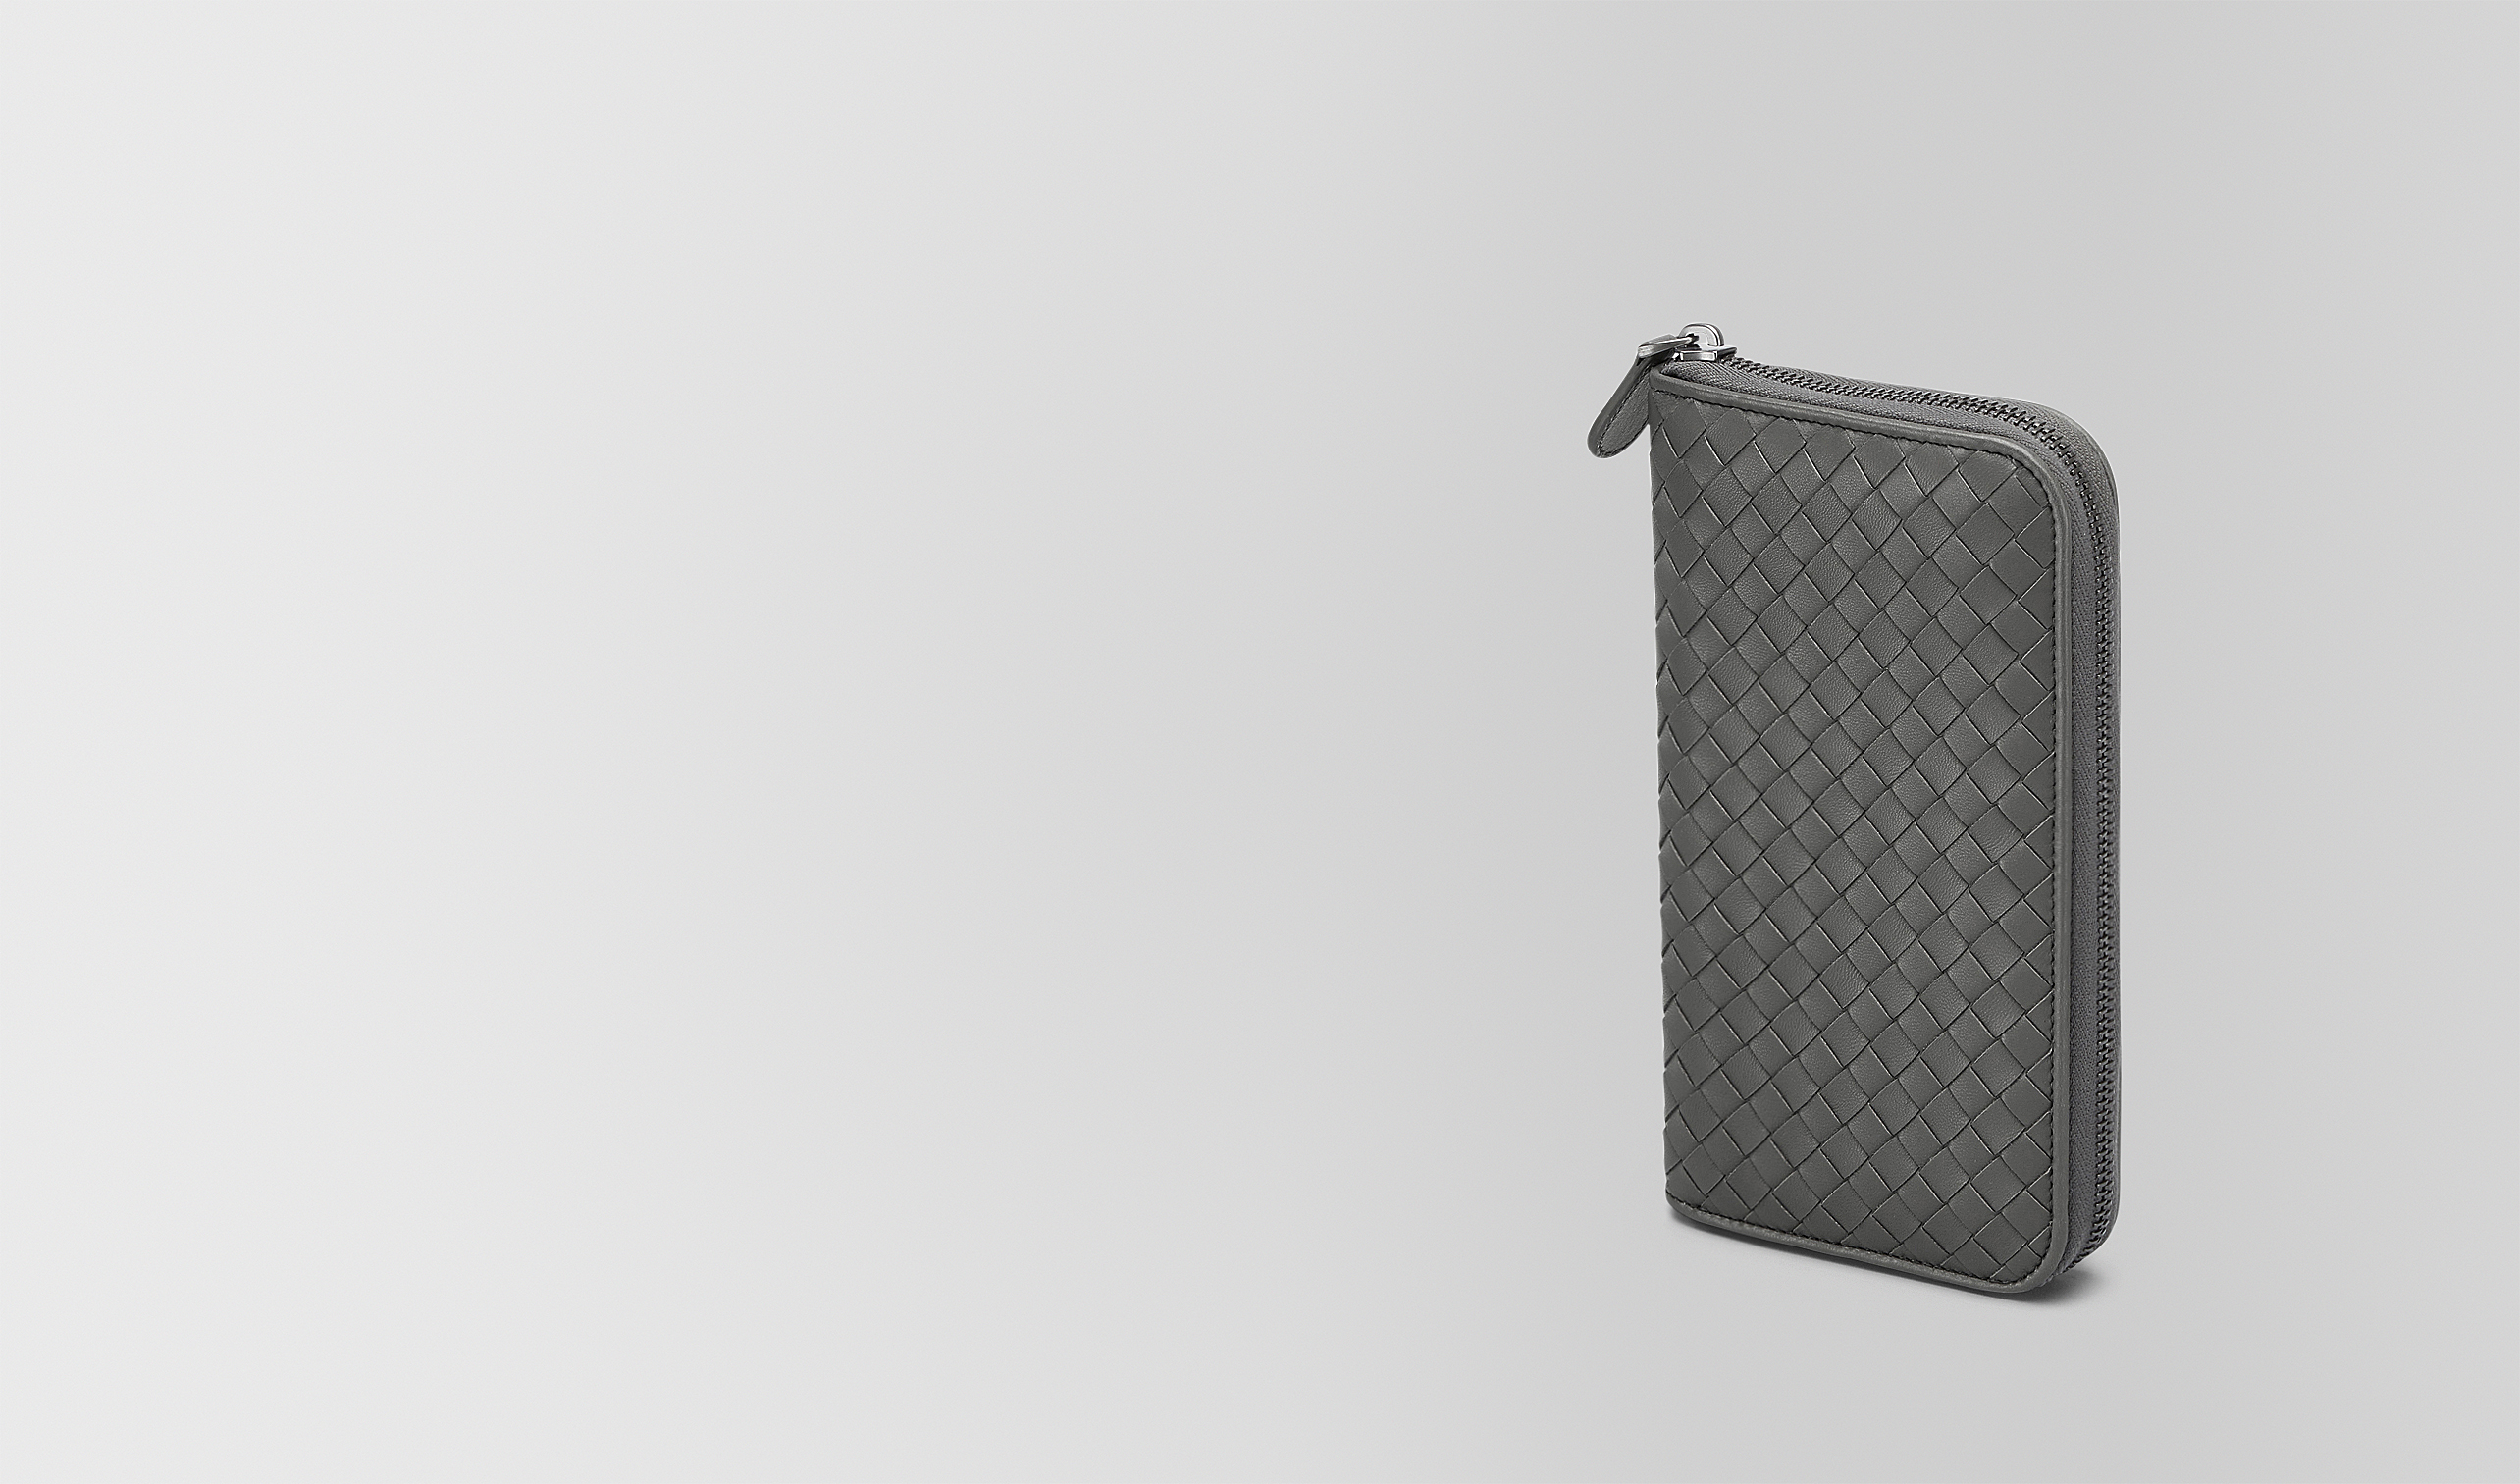 BOTTEGA VENETA Zip Around Wallet D ZIP AROUND WALLET IN NEW LIGHT GREY INTRECCIATO NAPPA pl